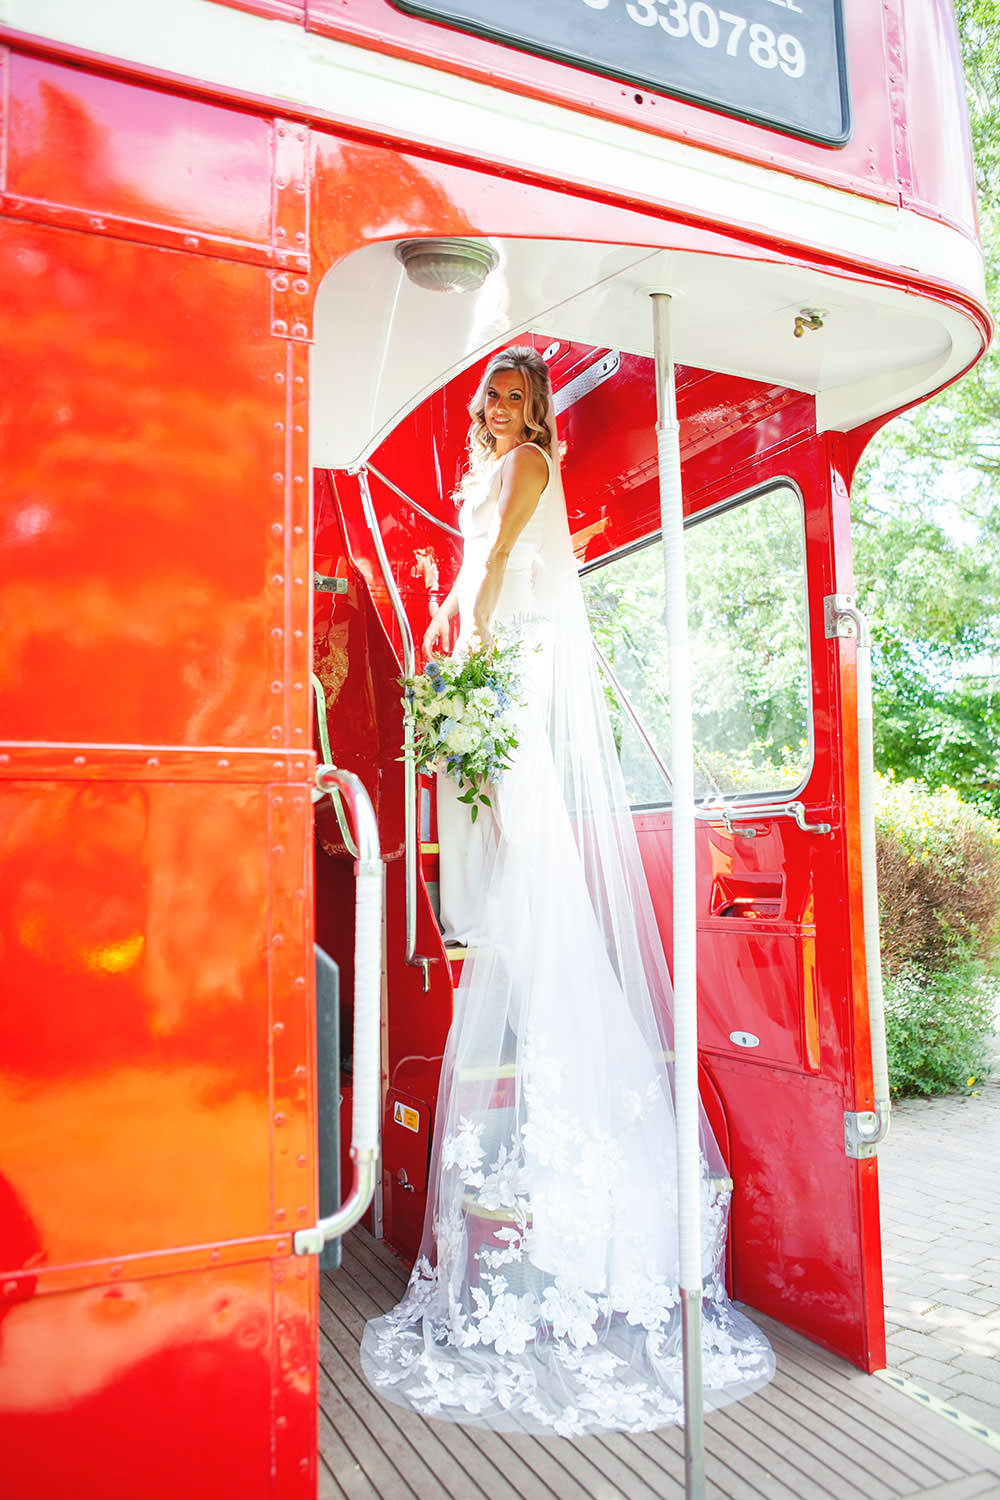 Bride bridal Fitted Fishtail Dress Gown Embroidered Floral Veil Vintage Bus Countryside Barn Wedding Katrina Matthews Photography